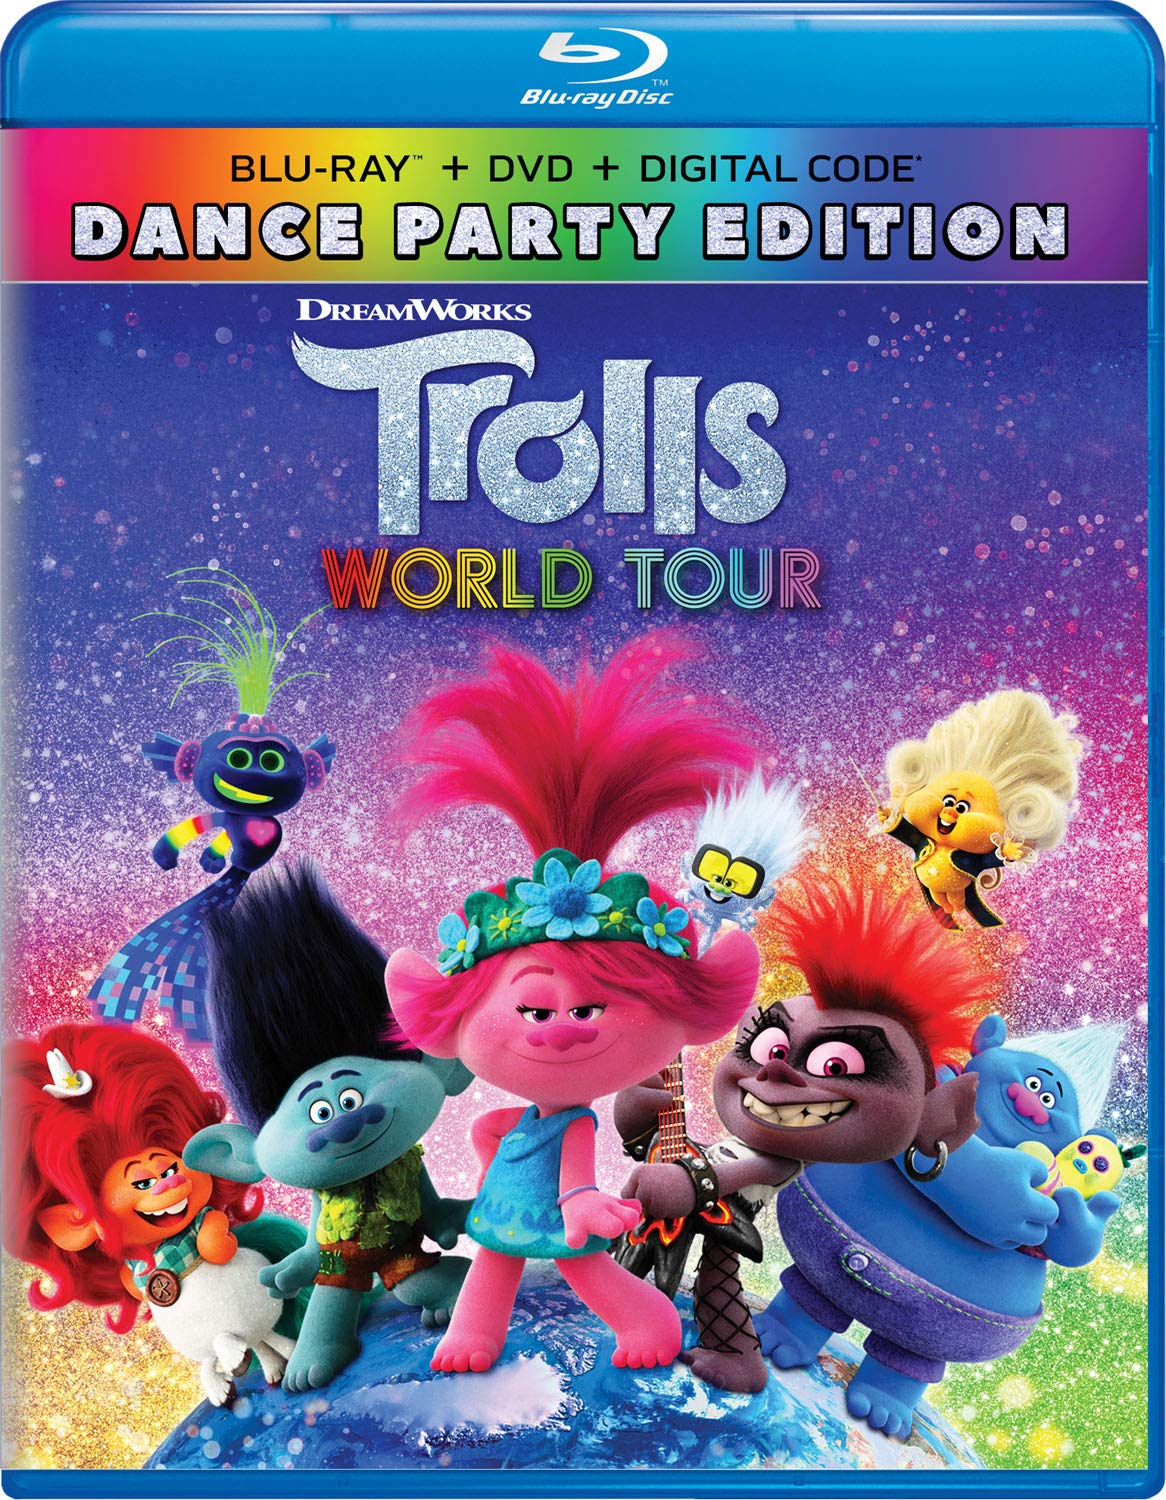 Amazon Com Trolls World Tour Blu Ray Anna Kendrick Justin Timberlake J Balvin Rachel Bloom Flula Blorg Kelly Clarkson James Corden Ester Dean Jamie Dornan Walt Dohrn Movies Tv